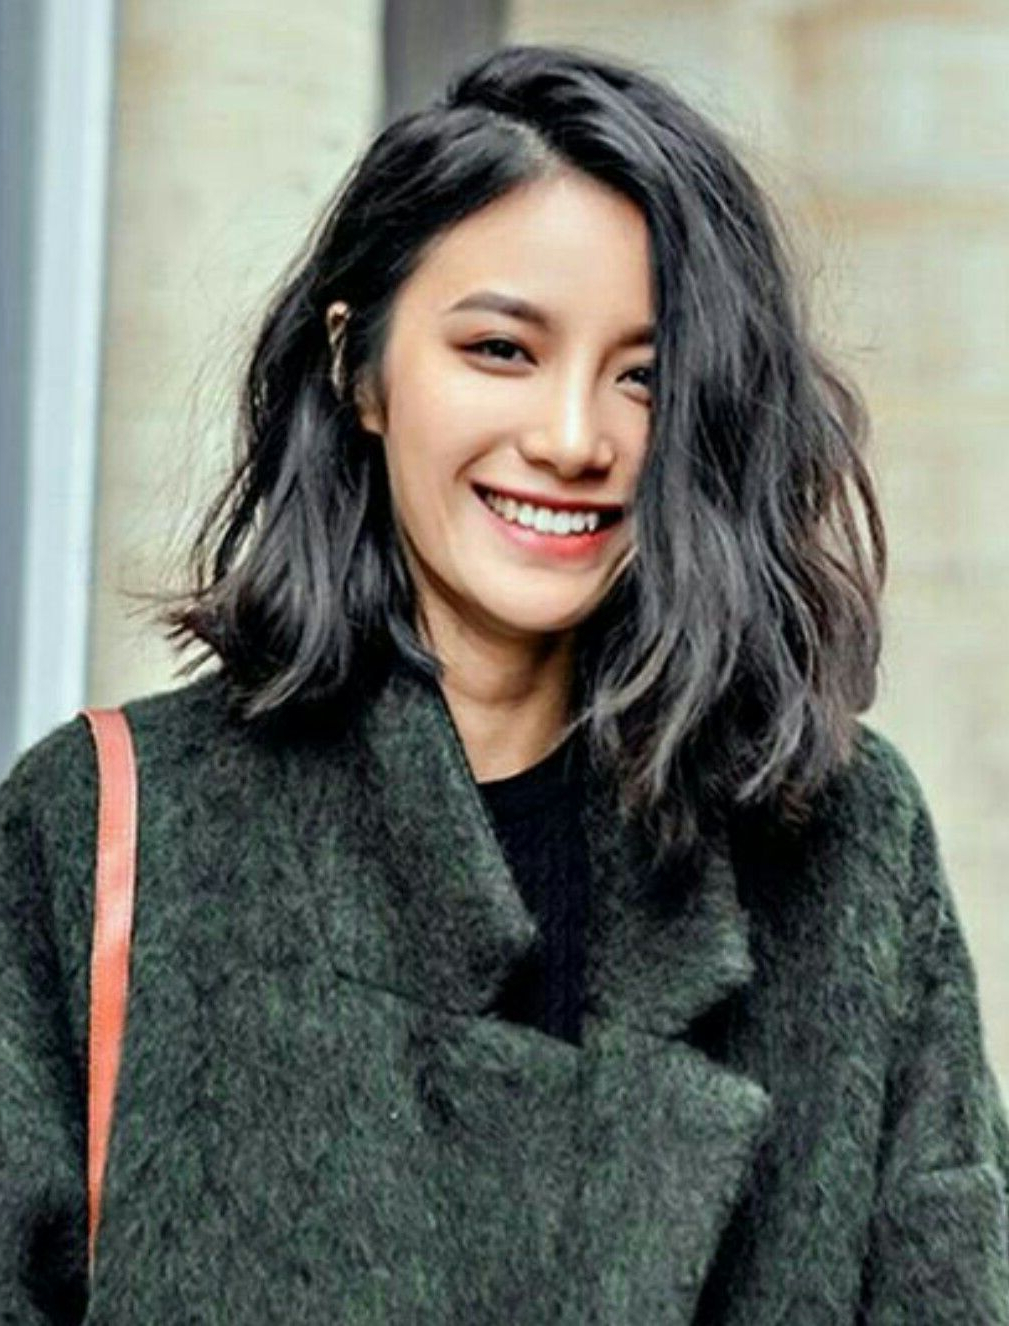 Wavy Shoulder Length With Blunt Ends | Hair In 2018 | Pinterest Regarding Lip Length Tousled Brunette Bob Hairstyles (View 3 of 20)